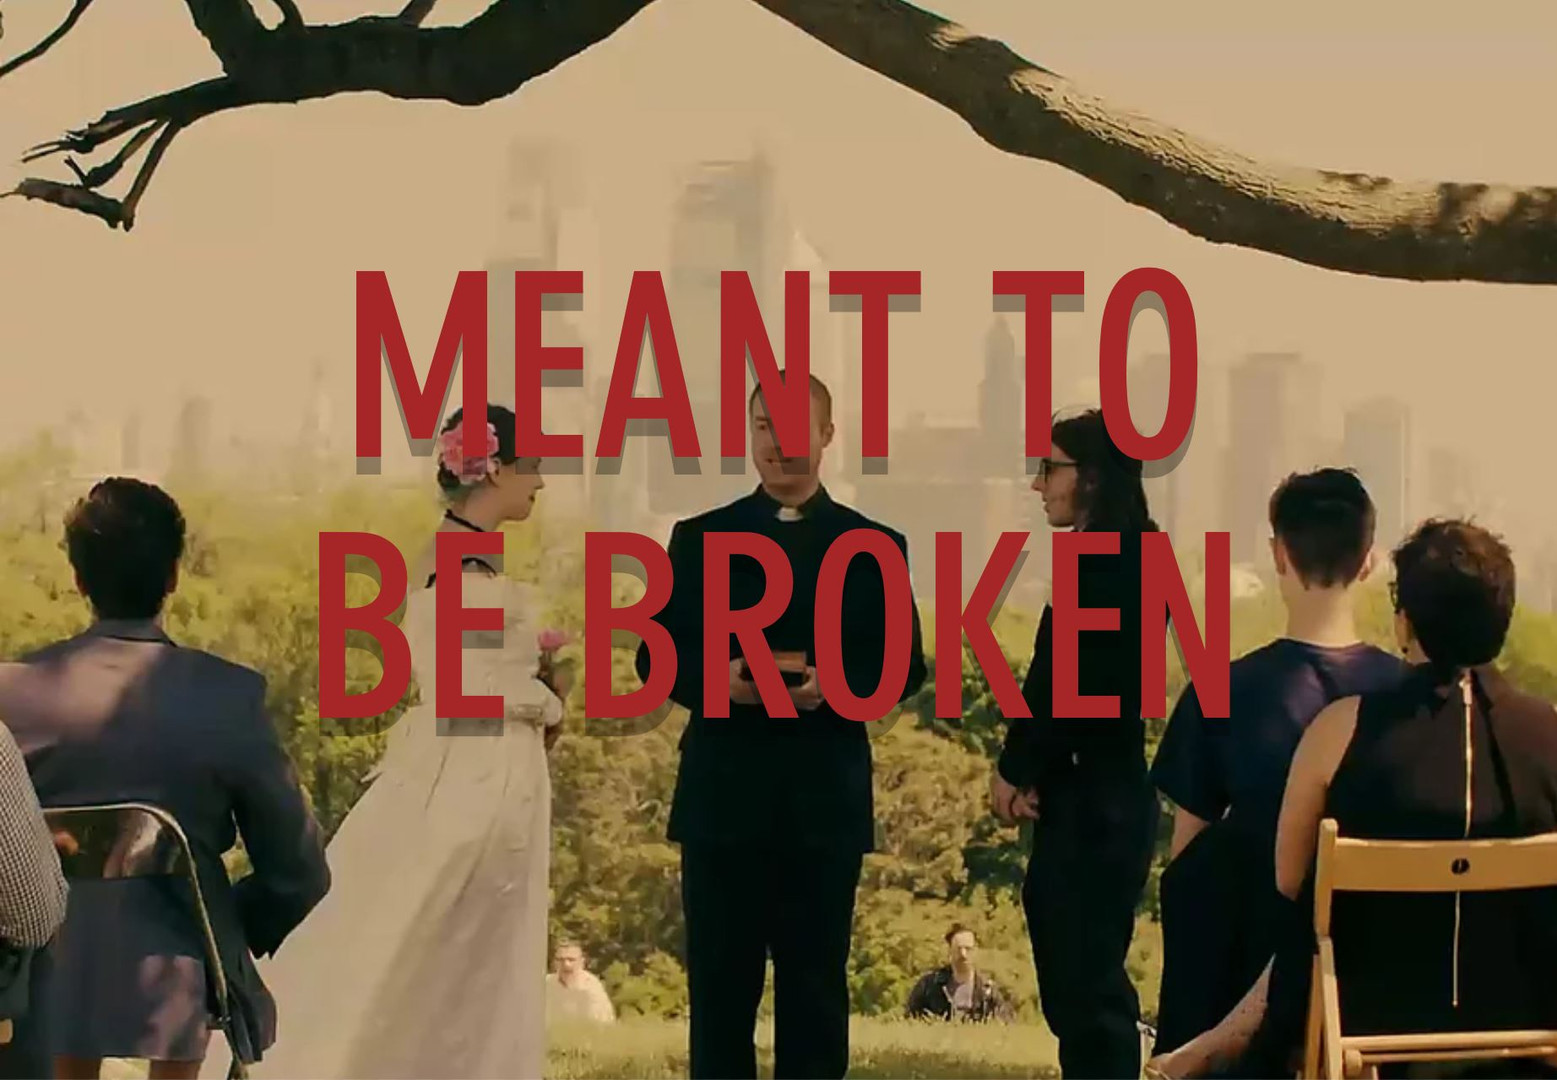 Meant To Be Broken.JPG